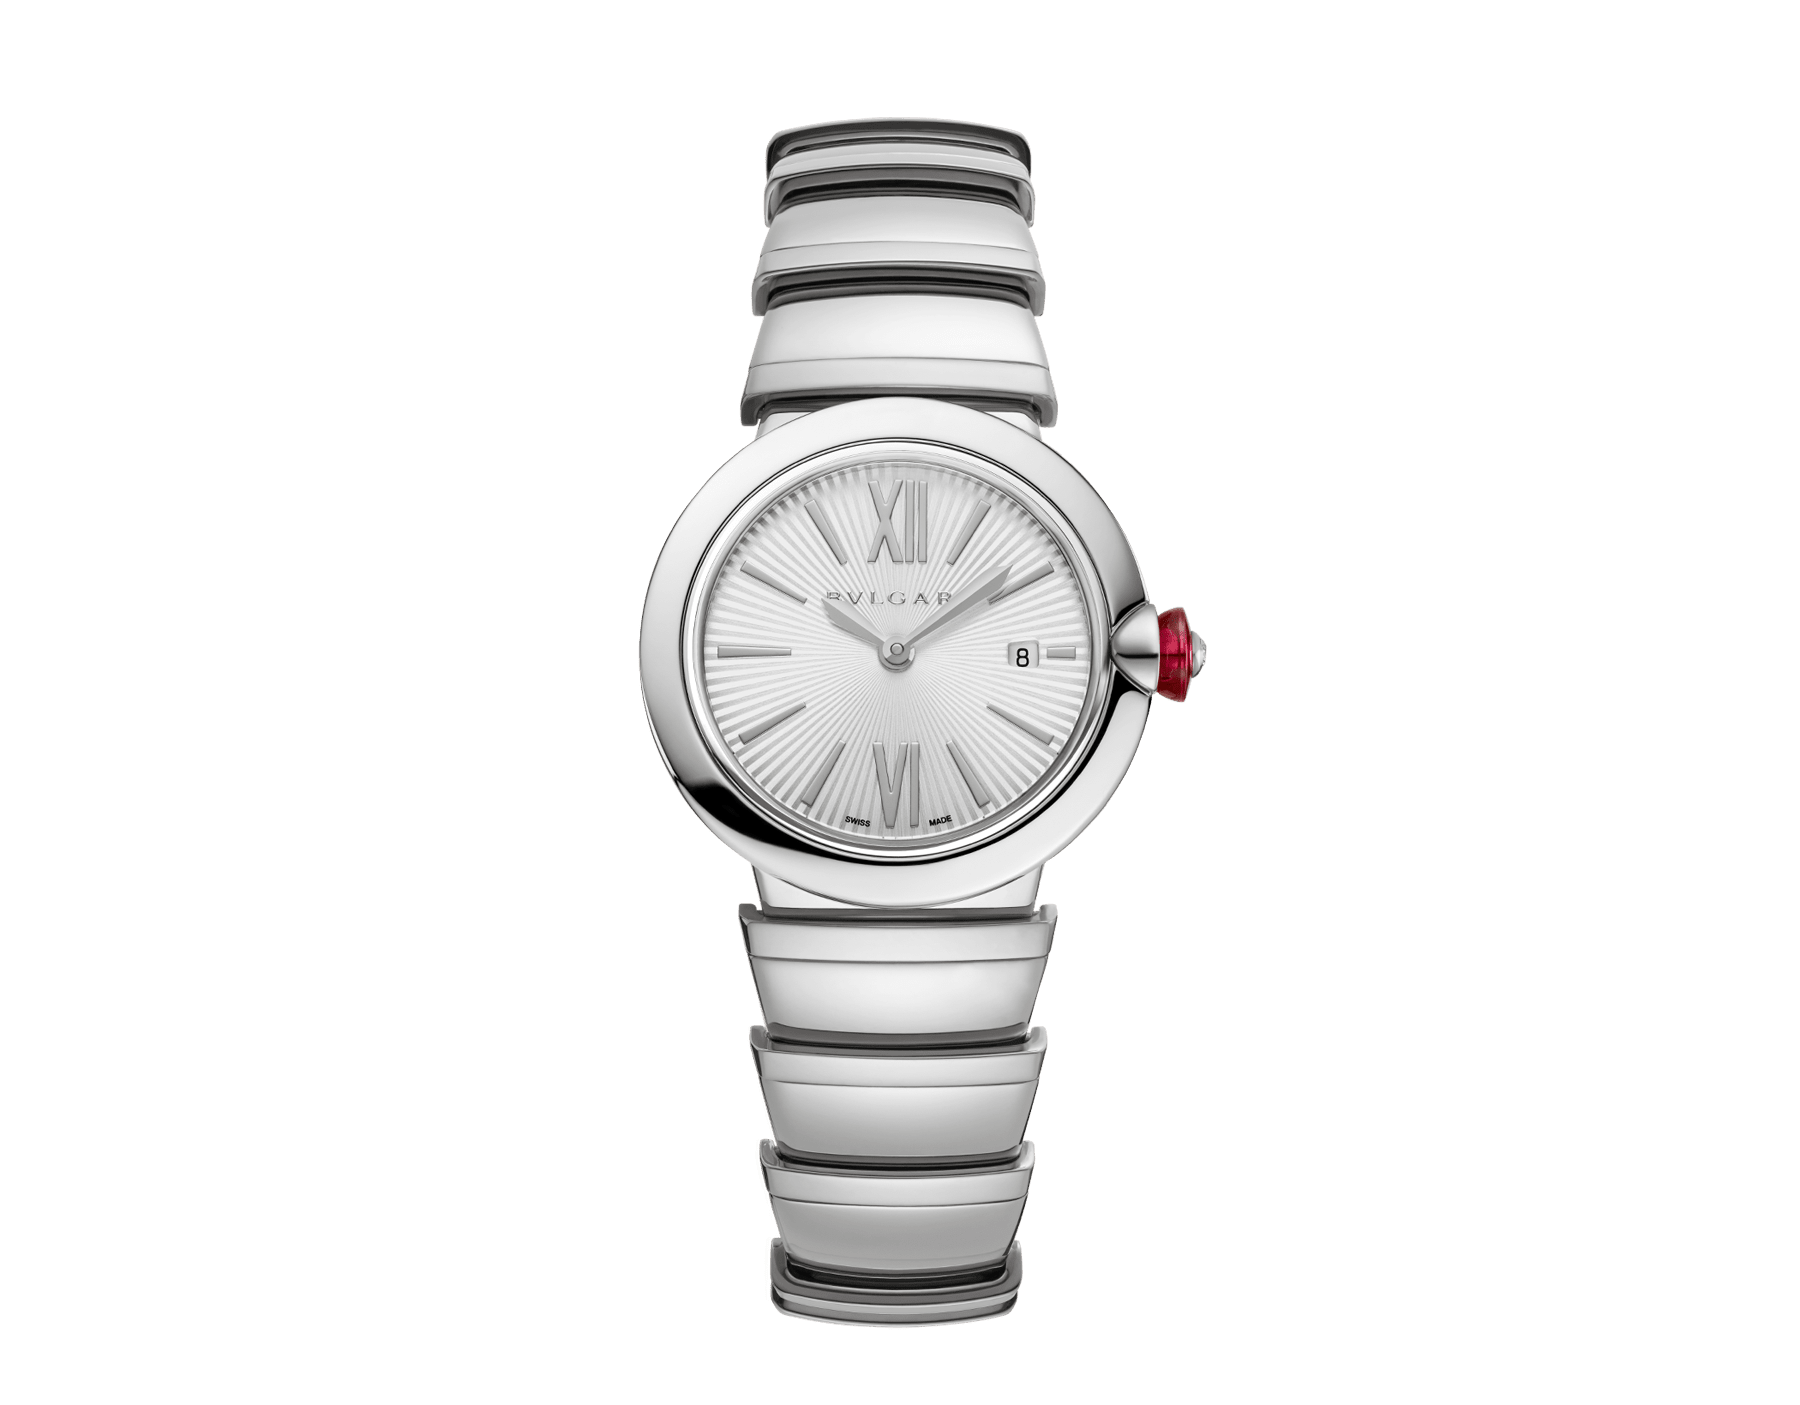 LVCEA watch in stainless steel case and bracelet, with silver opaline dial. 102195 image 1